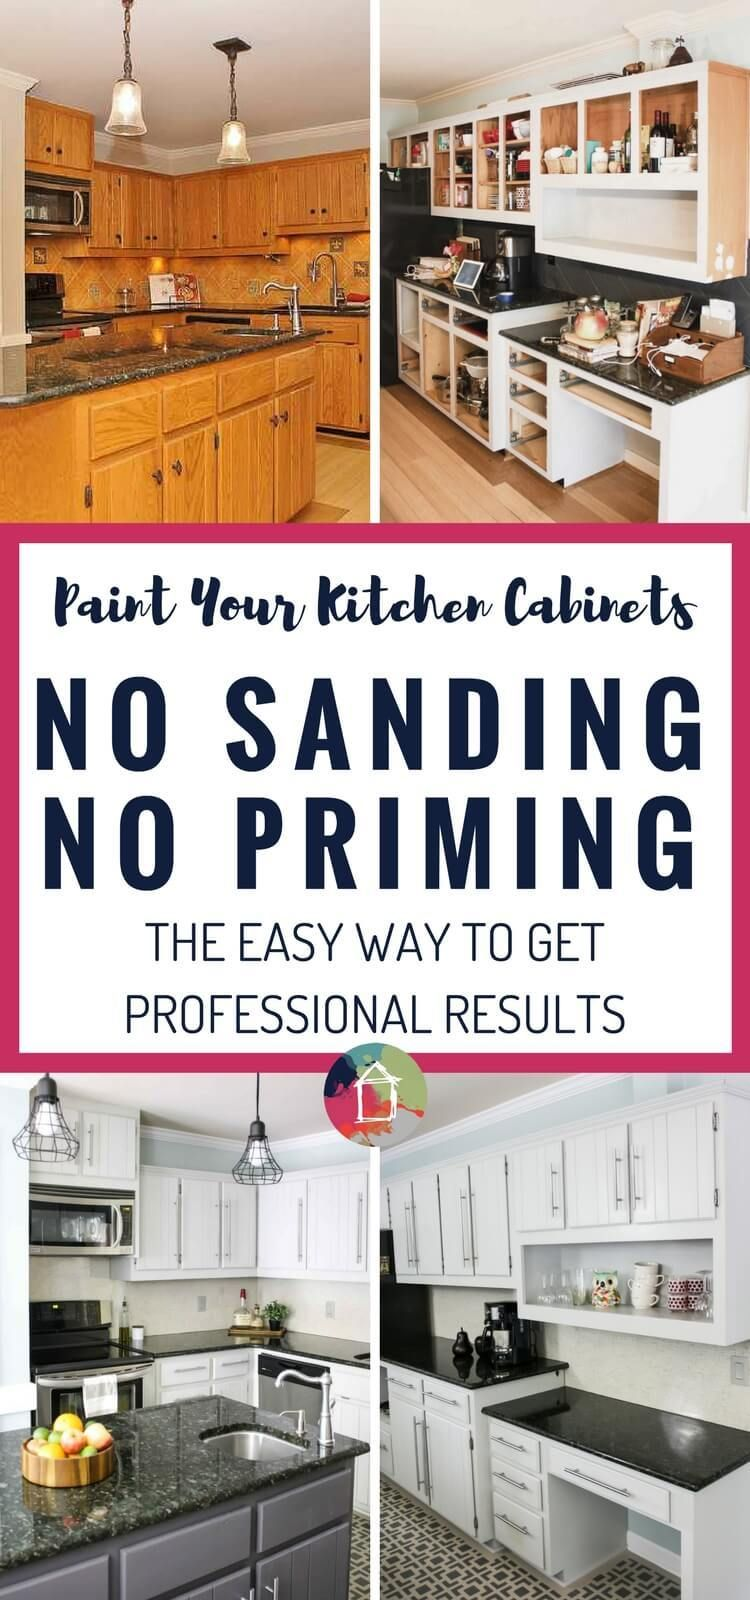 How To Paint Kitchen Cabinets Without Sanding Or Priming From Can You Paint Vinyl Kitchen Cabin Kitchen Cabinets Kitchen Diy Makeover Kitchen Cabinets Makeover